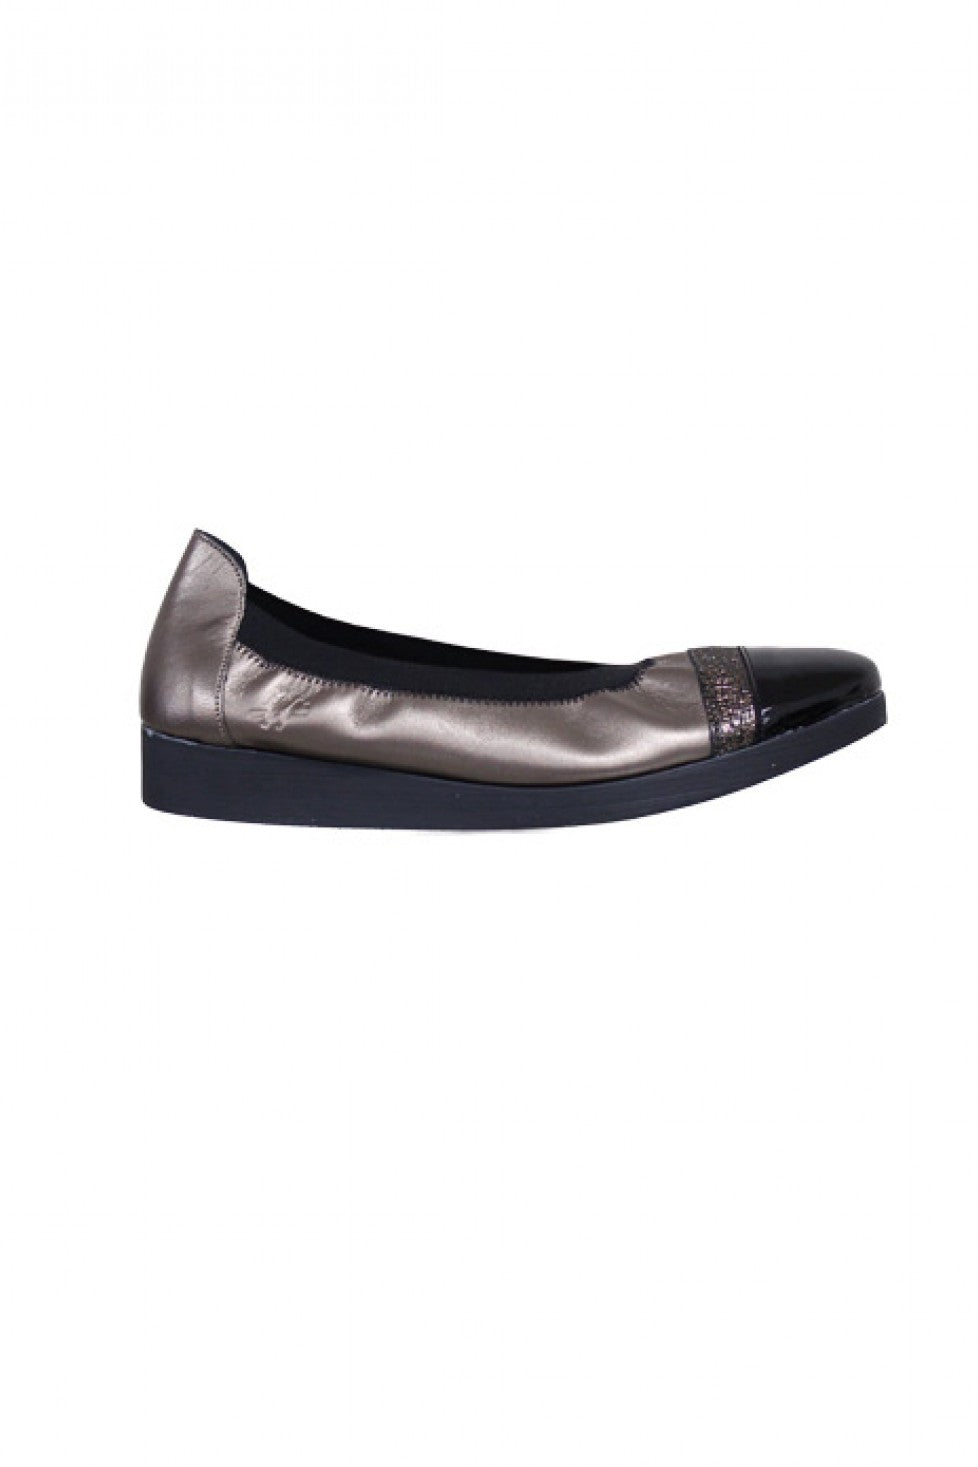 Bronze Comfortable Hirica Shoe Style and Grace